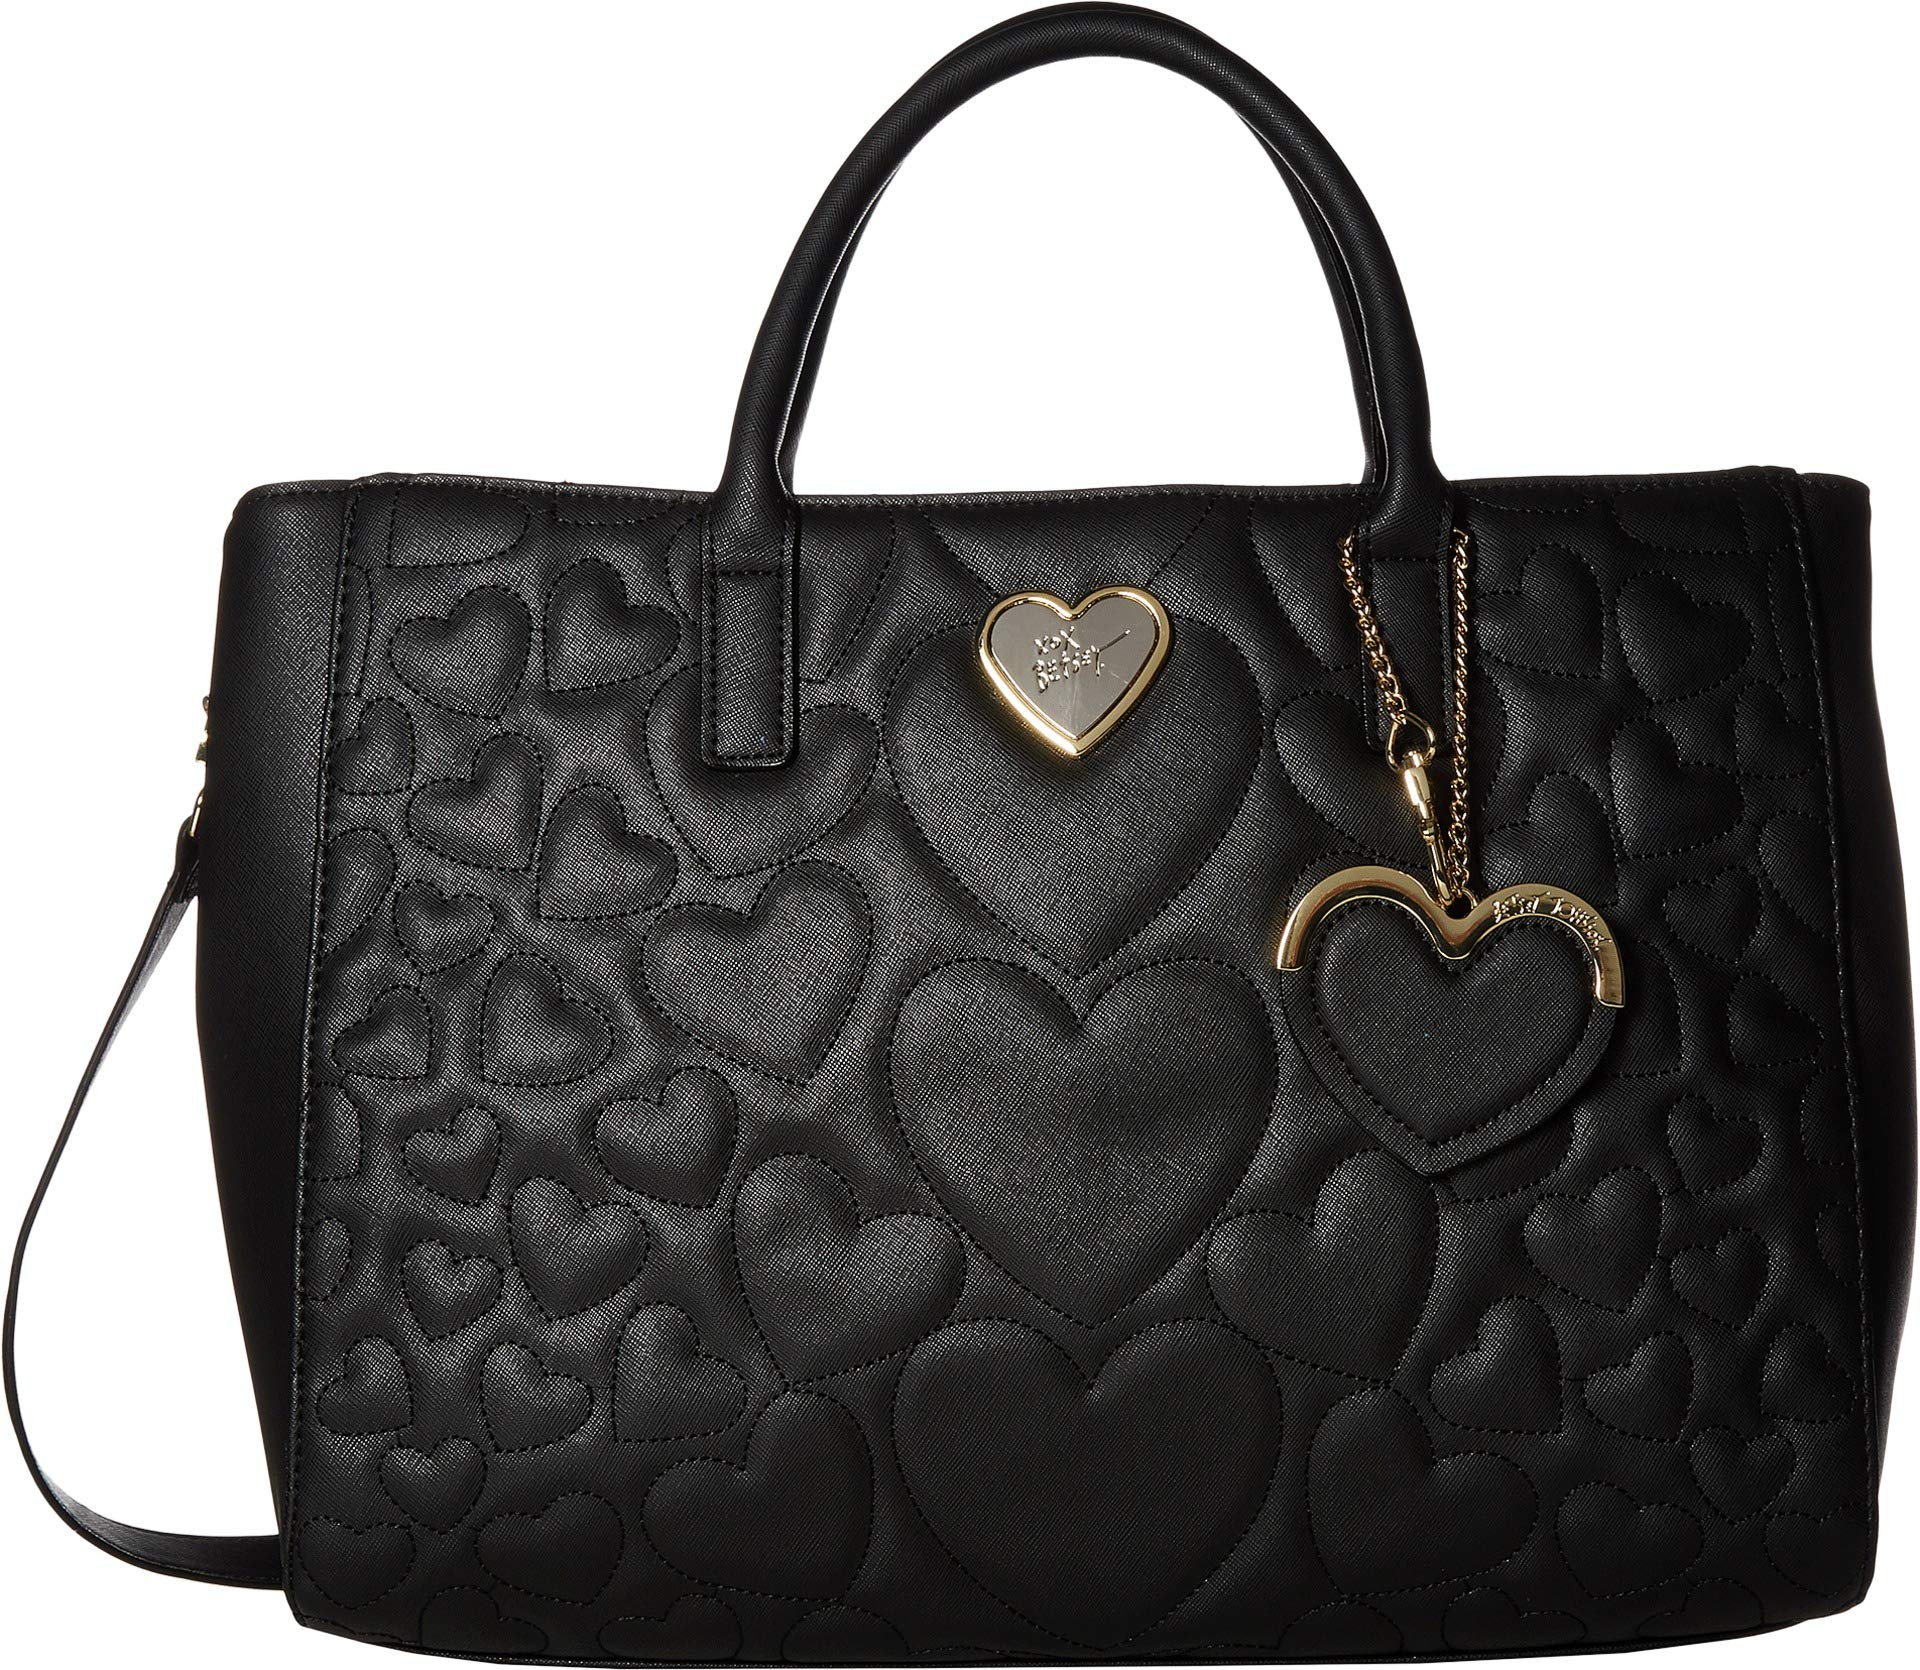 Betsey Johnson Women's Structured Quilt Satchel Black One Size by Betsey Johnson (Image #1)